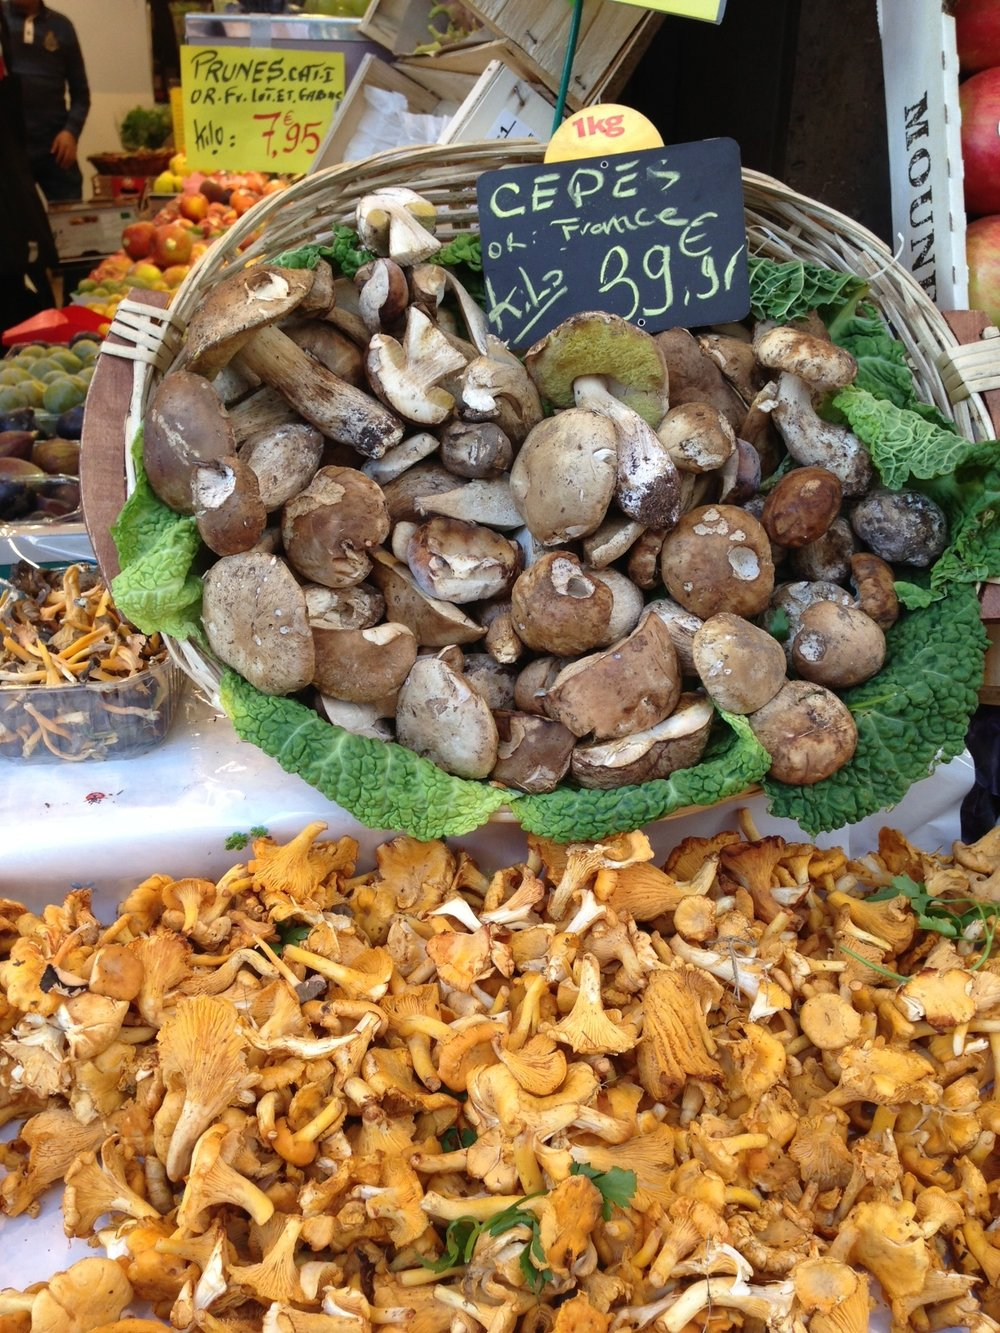 Cepes and girolles